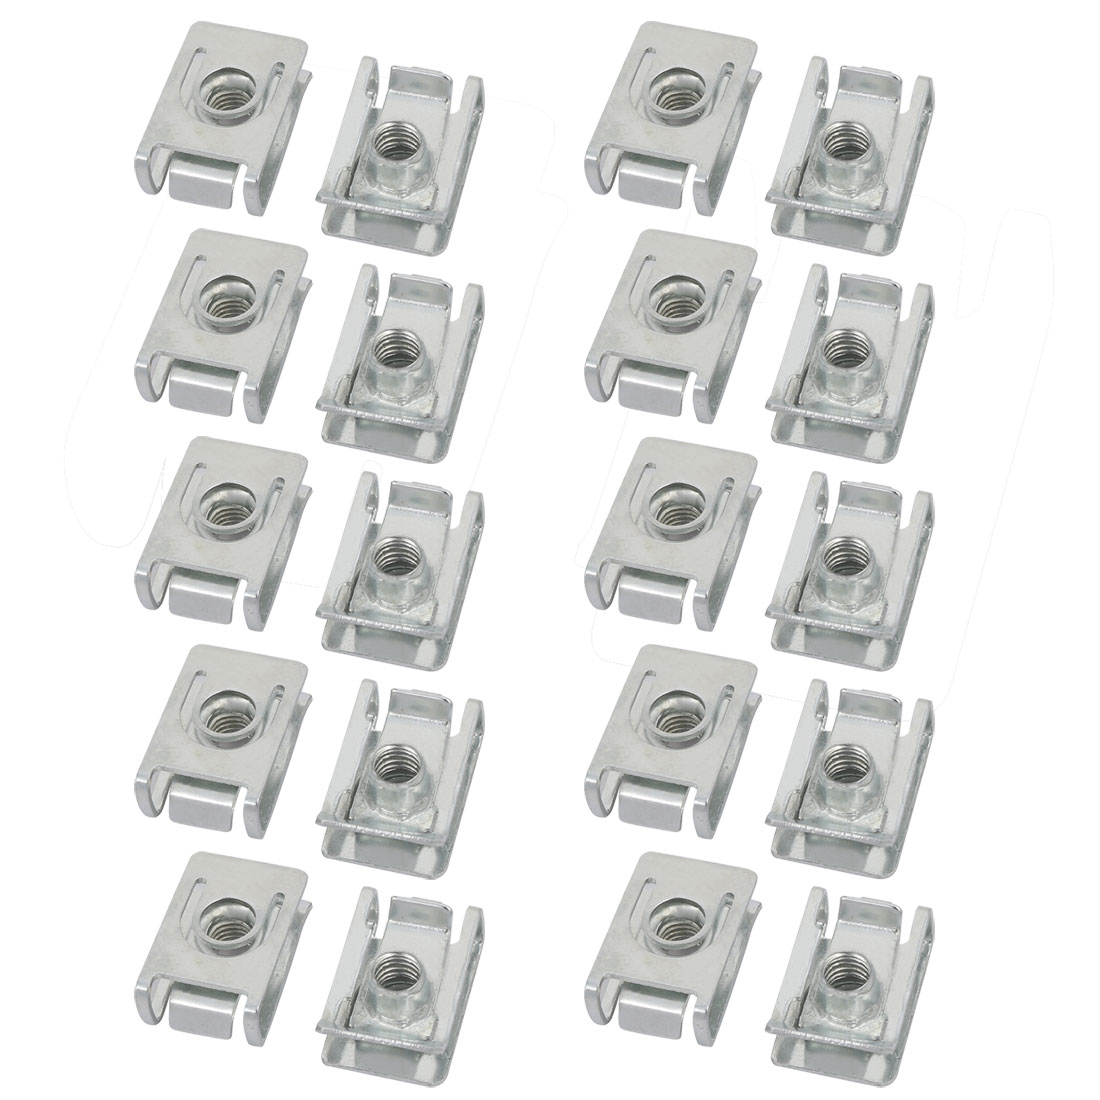 M6 23mmx15mm Iron Zinc Plated Extruded U Nut Clip 20pcs